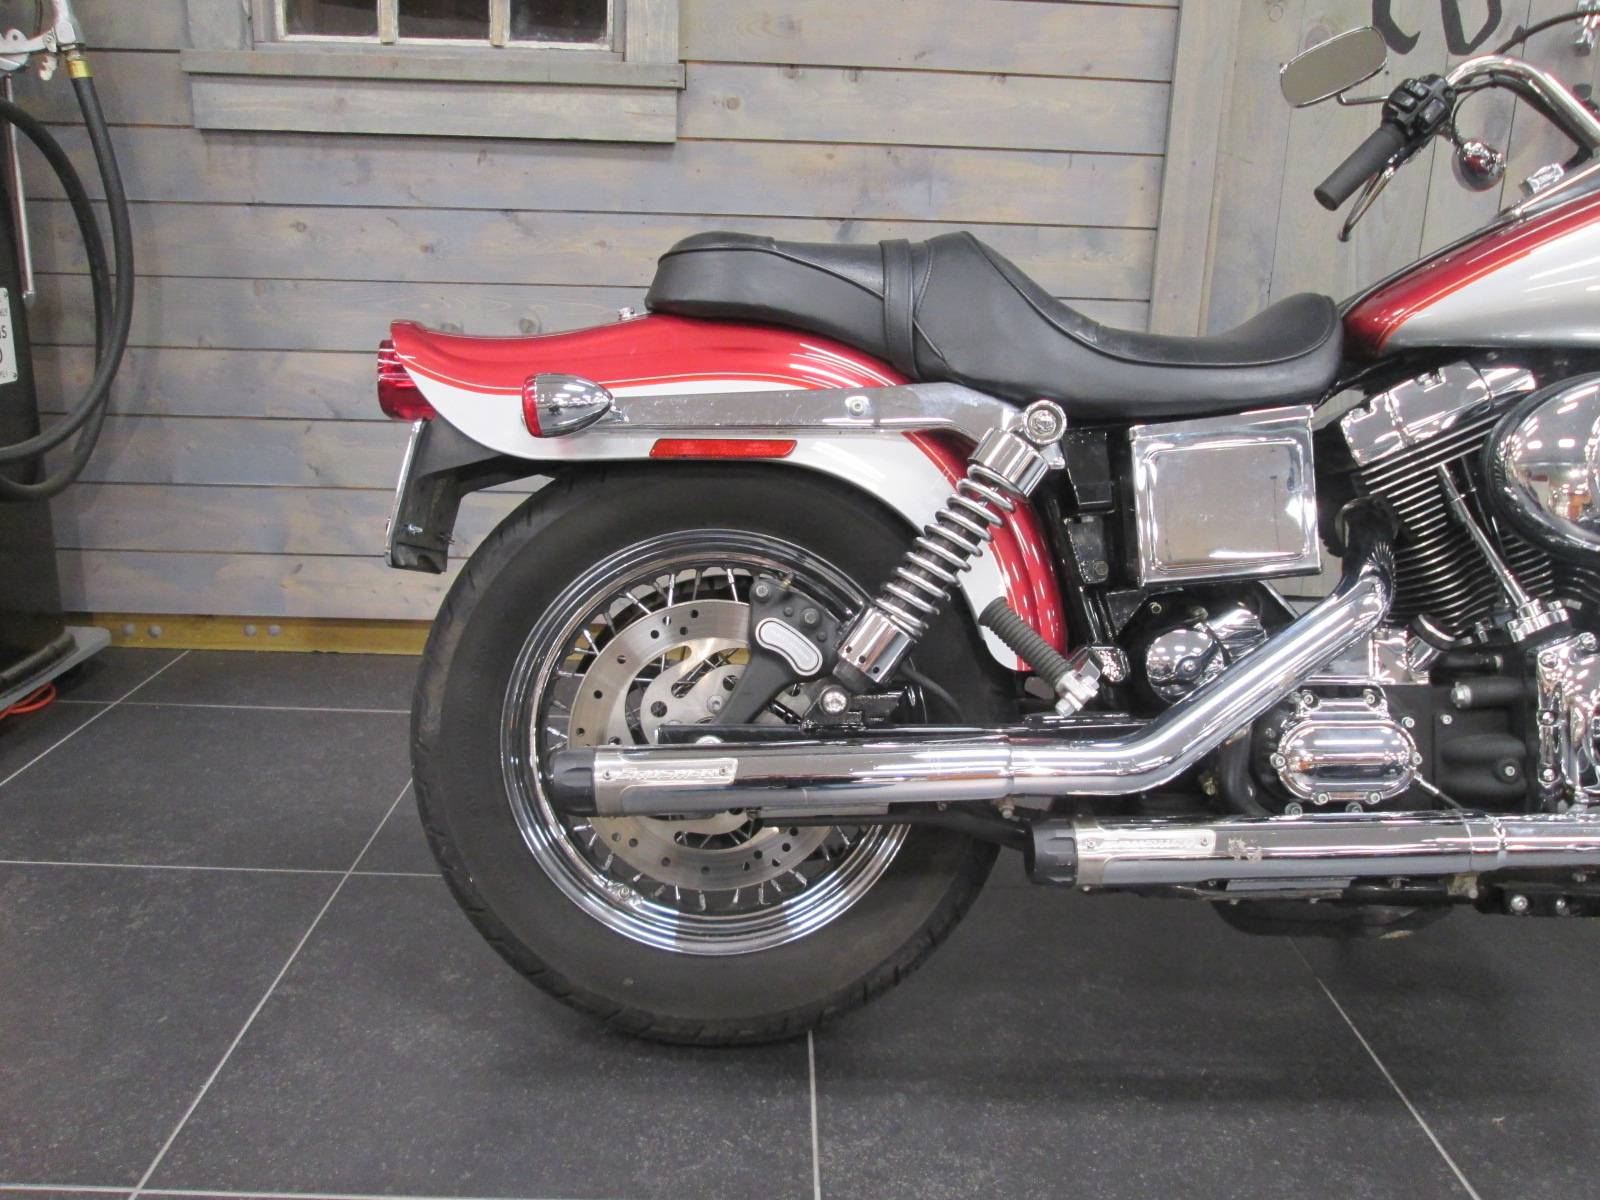 2005 Harley-Davidson FXDWG/FXDWGI Dyna Wide Glide® in Lafayette, Indiana - Photo 3